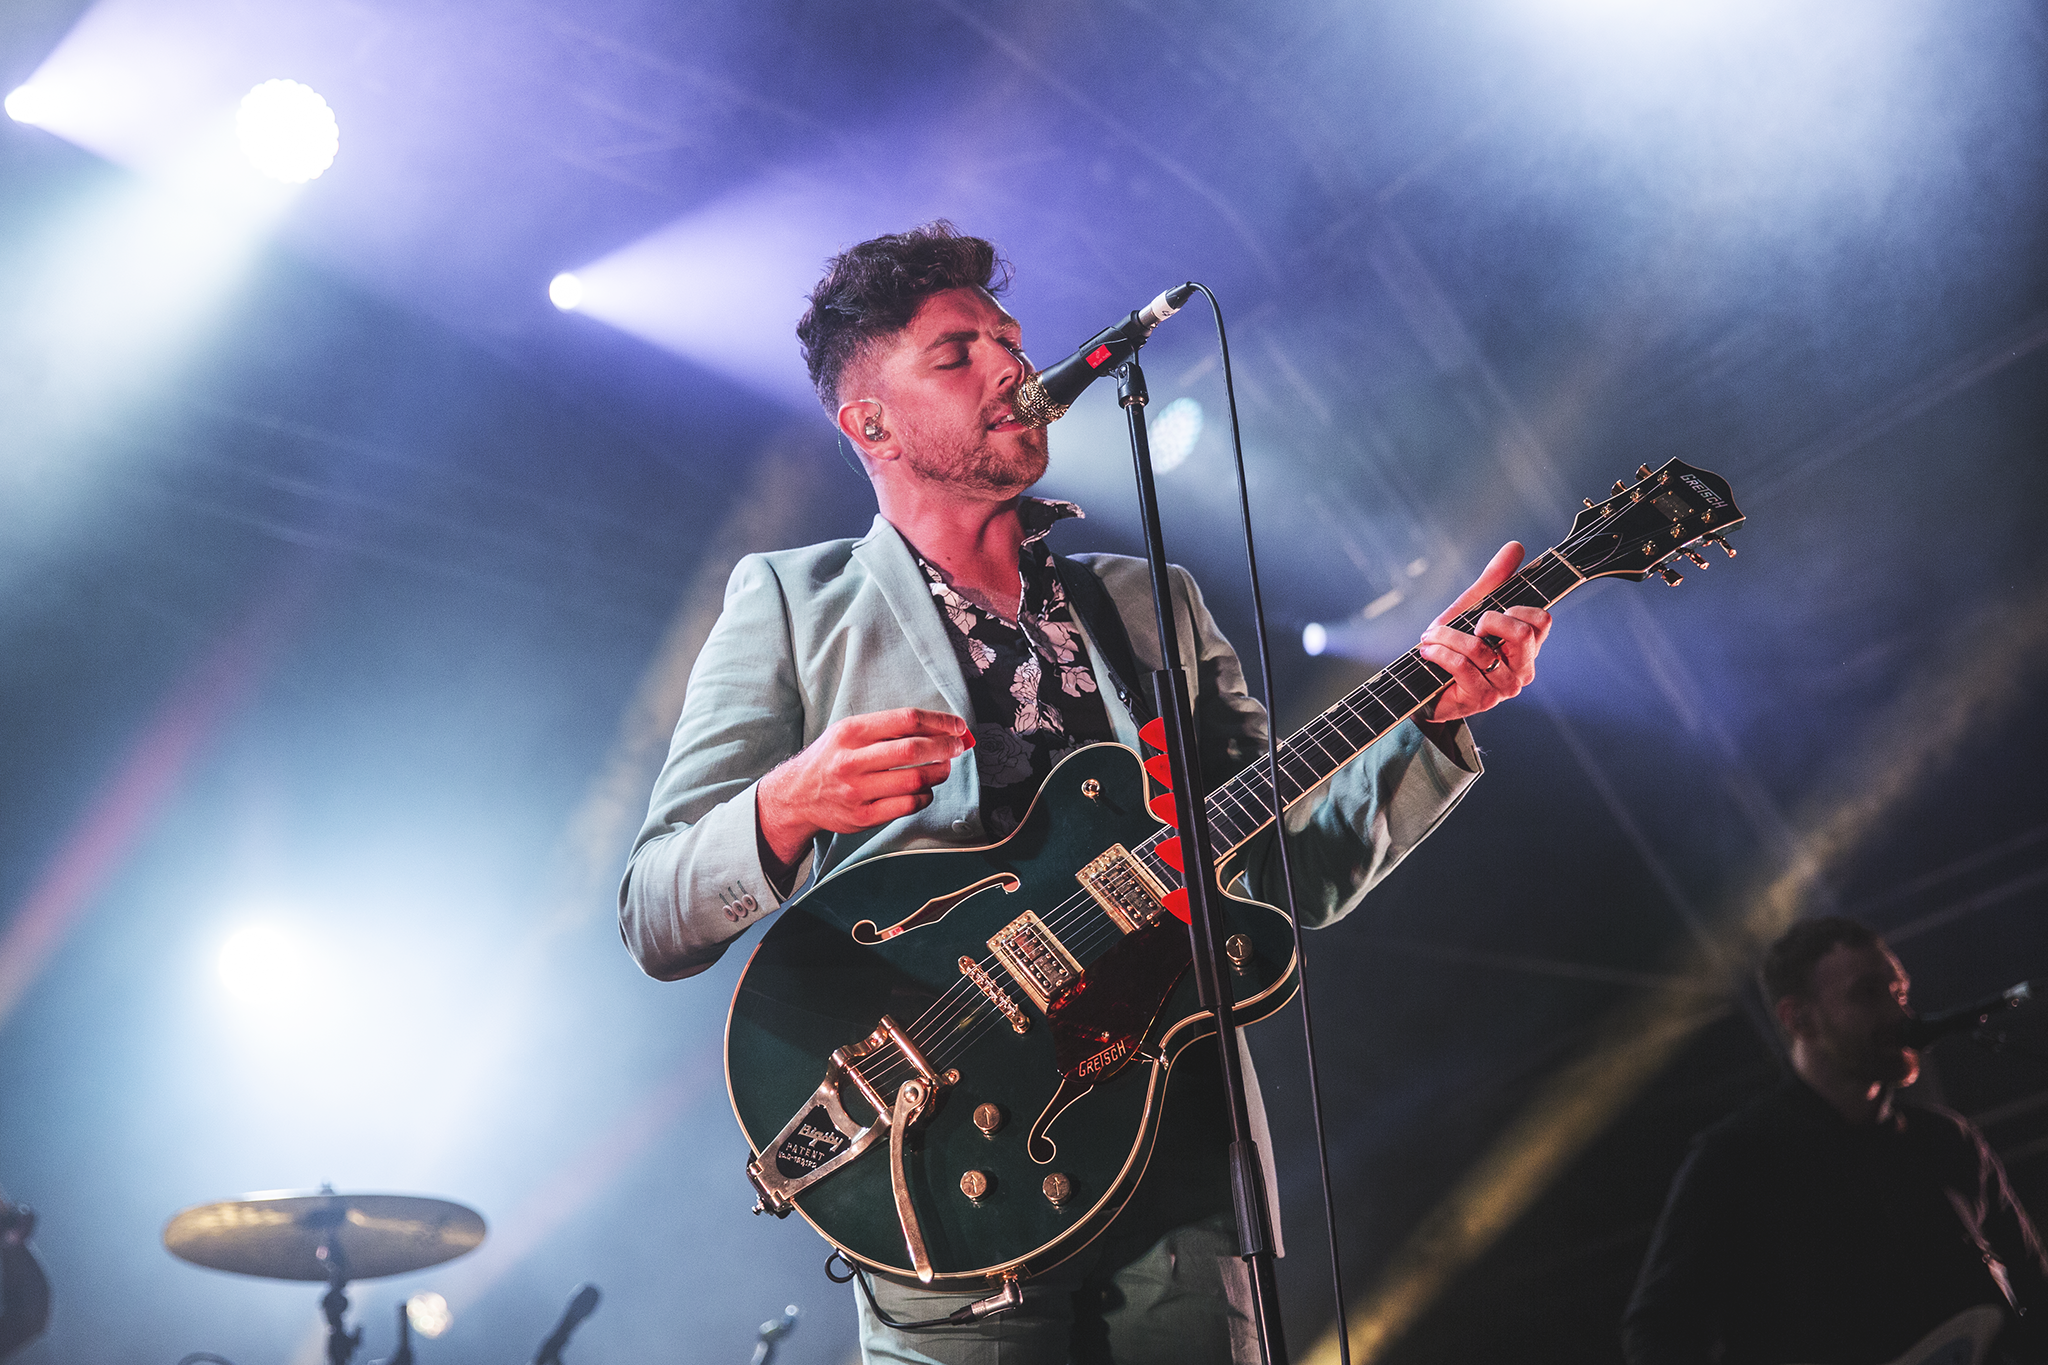 TWIN ATLANTIC CLOSING DAY TWO OF 2000TREES FESTIVAL - 13.07.2018  PICTURE BY: SEAN FRANCIS PHOTOGRAPHY